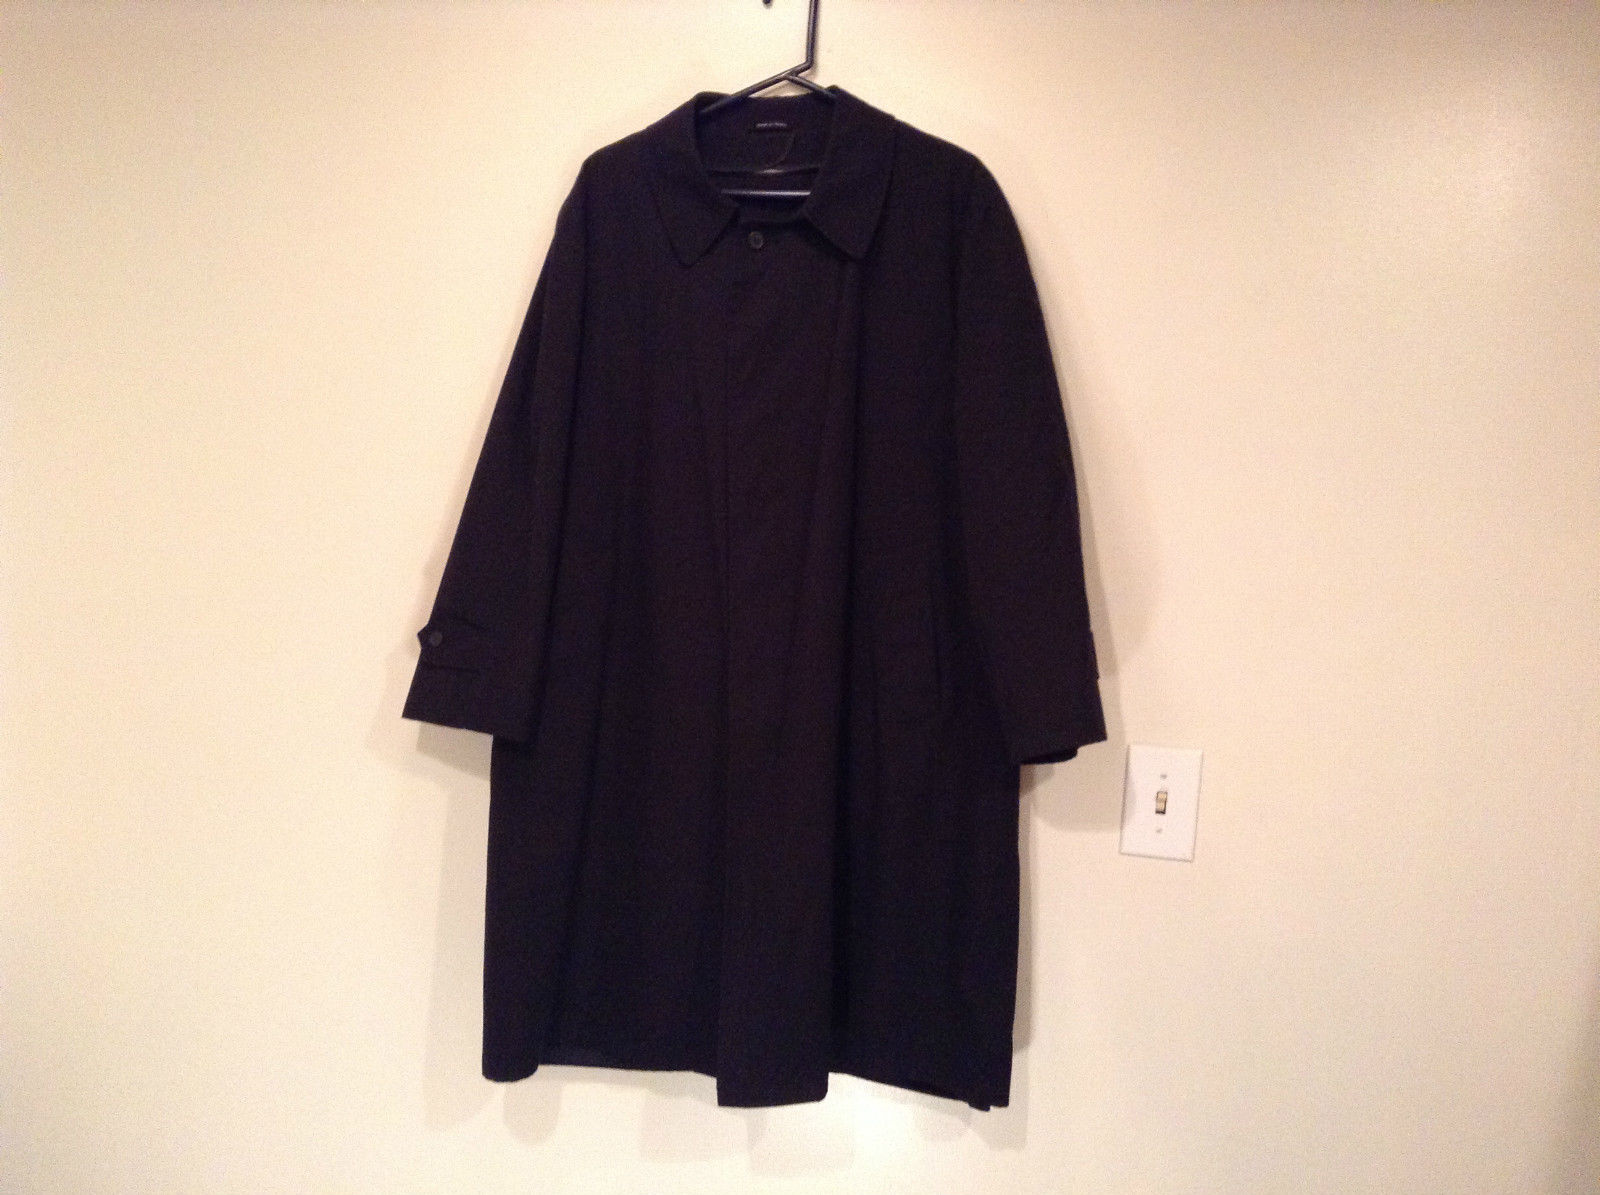 Black All Weather Trench Coat Size 46 Short Thermolite Insulating Lining